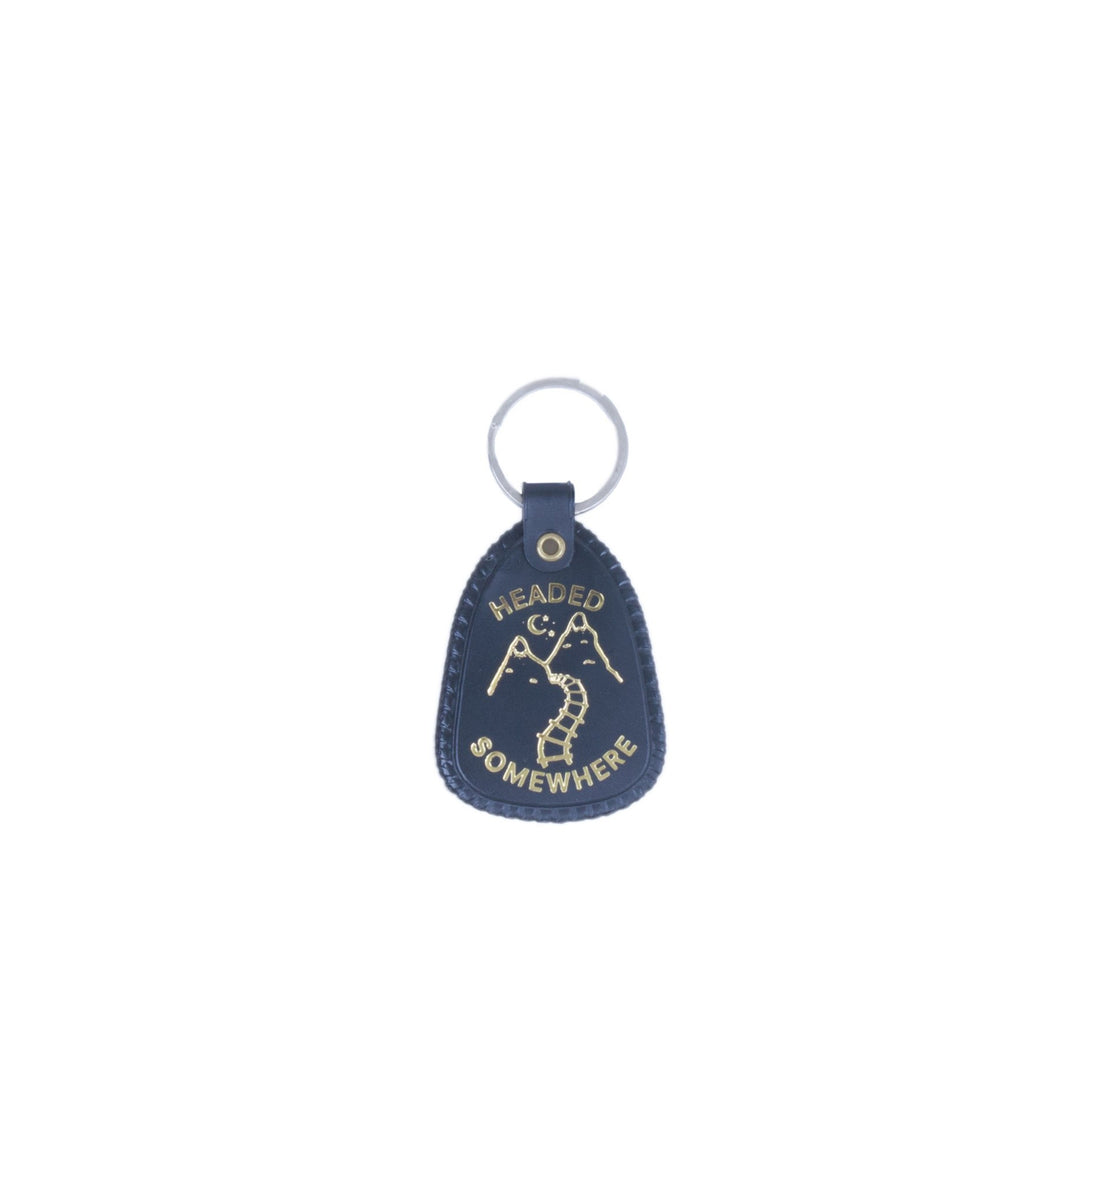 Explorer's Press - Headed Somewhere Keychain - Accessories: Keychains - Iron and Resin